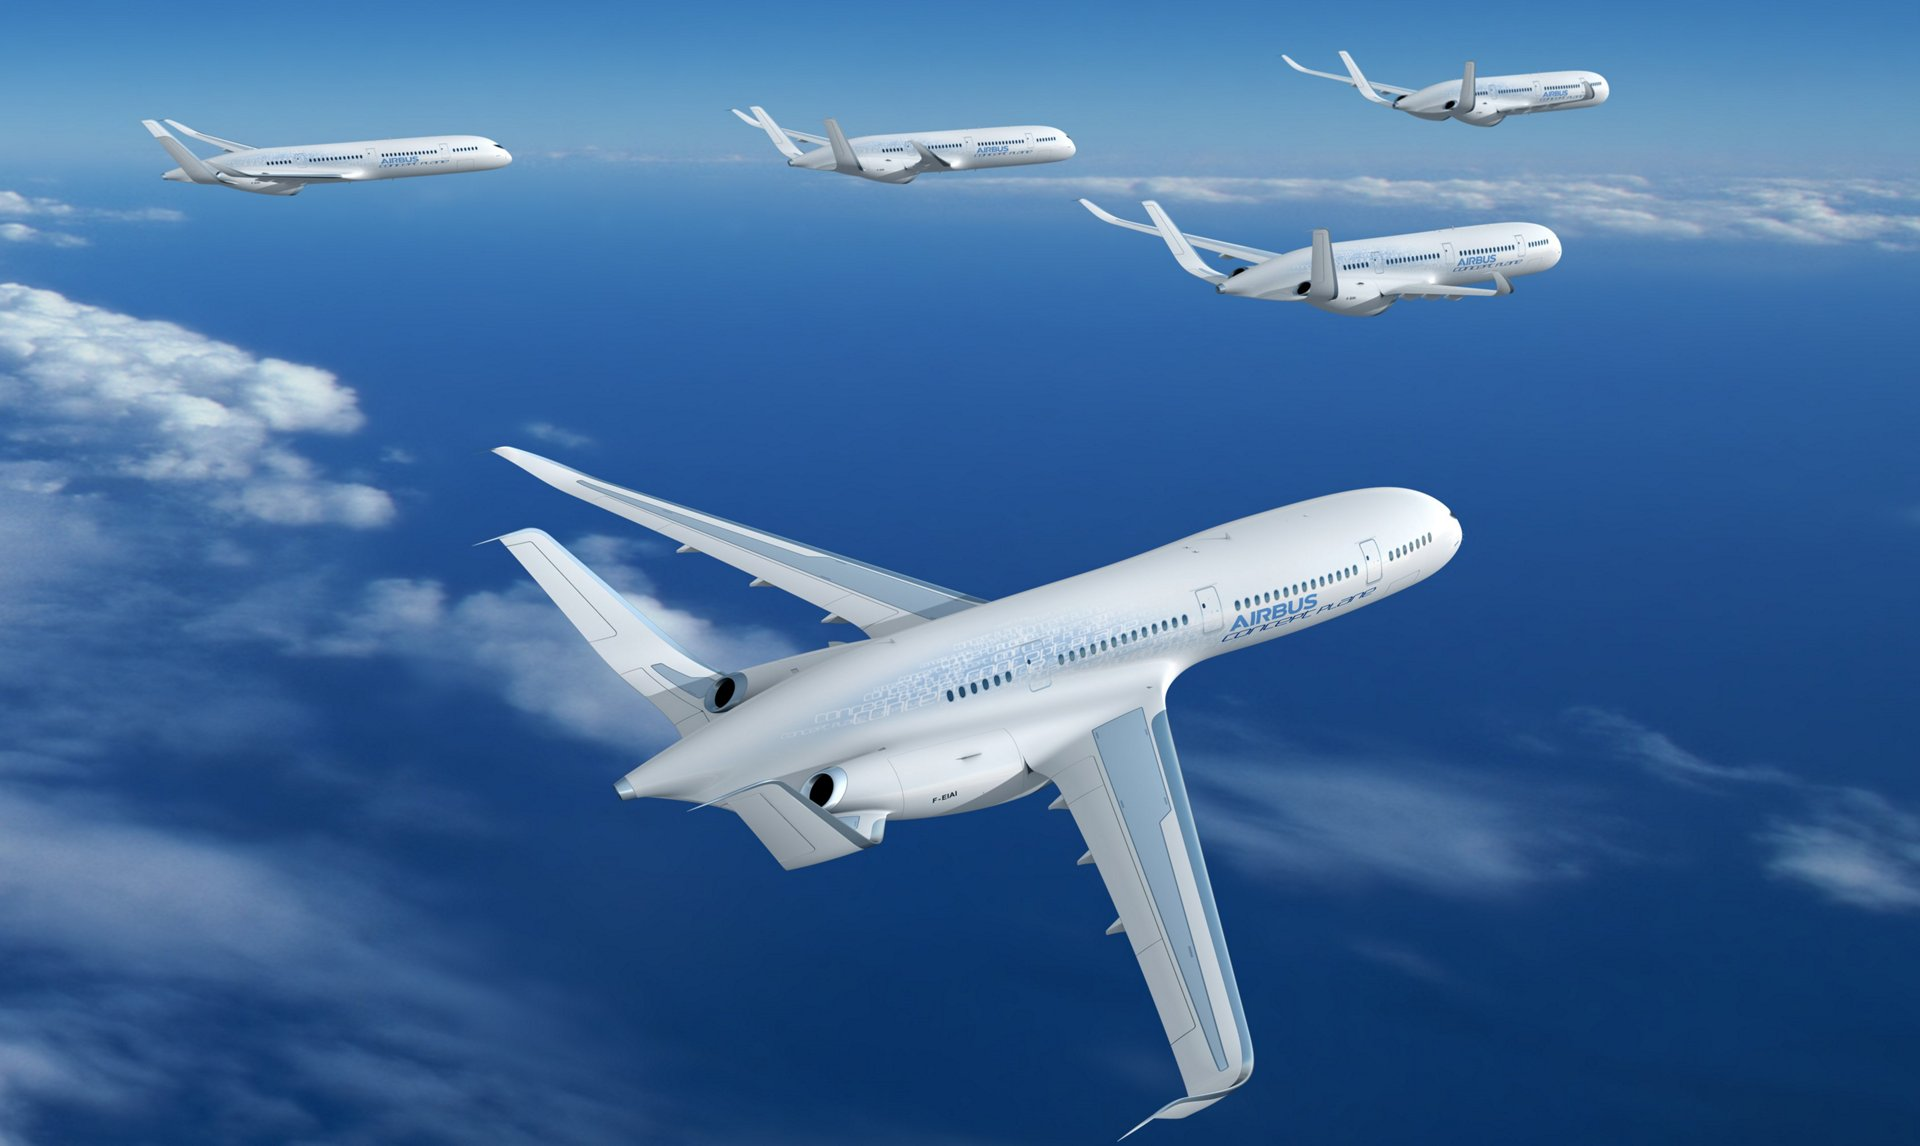 On the road to sustainable aviation